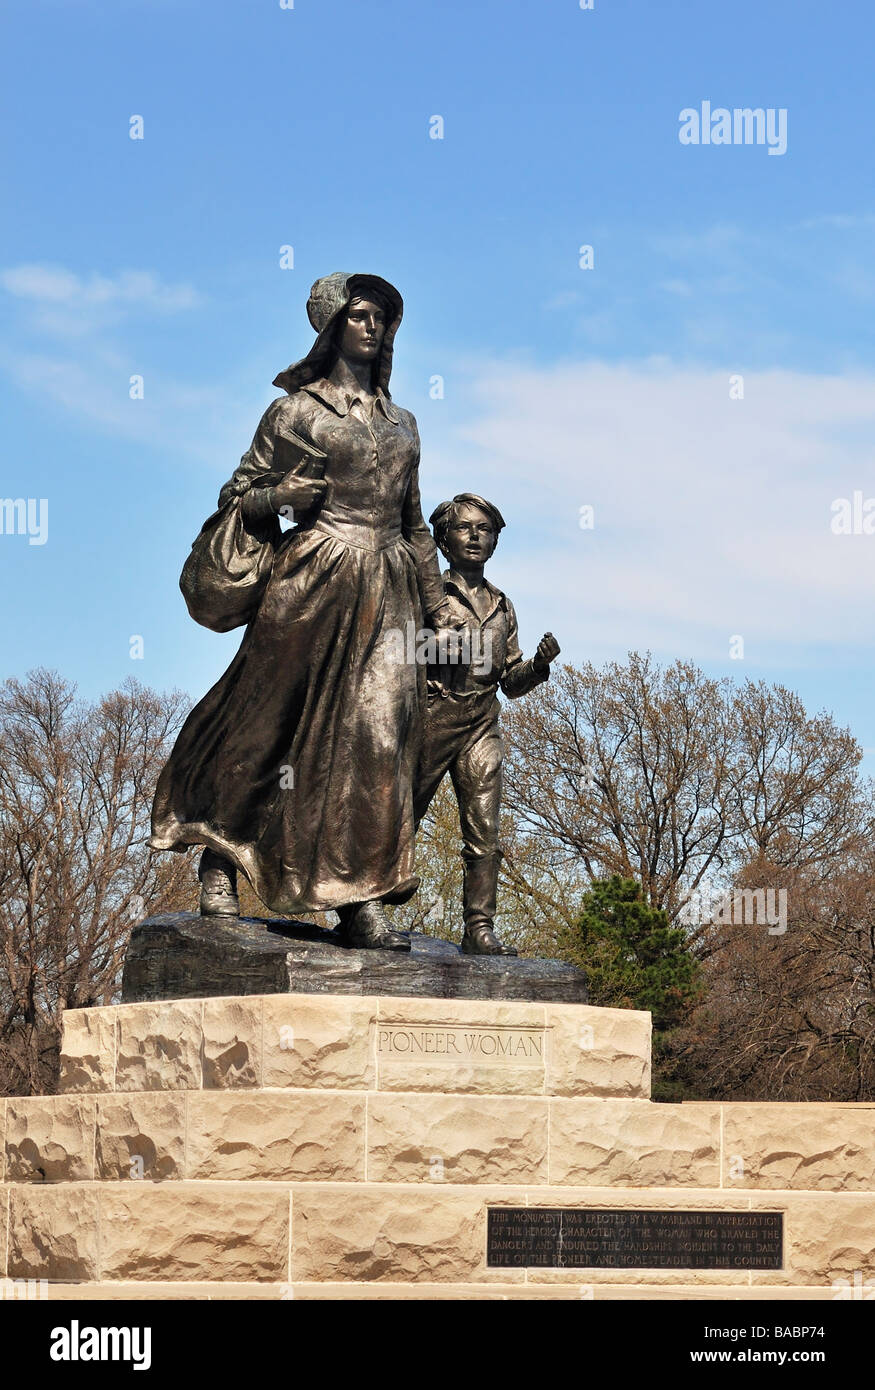 pioneer-woman-statue-sculpted-by-bryant-